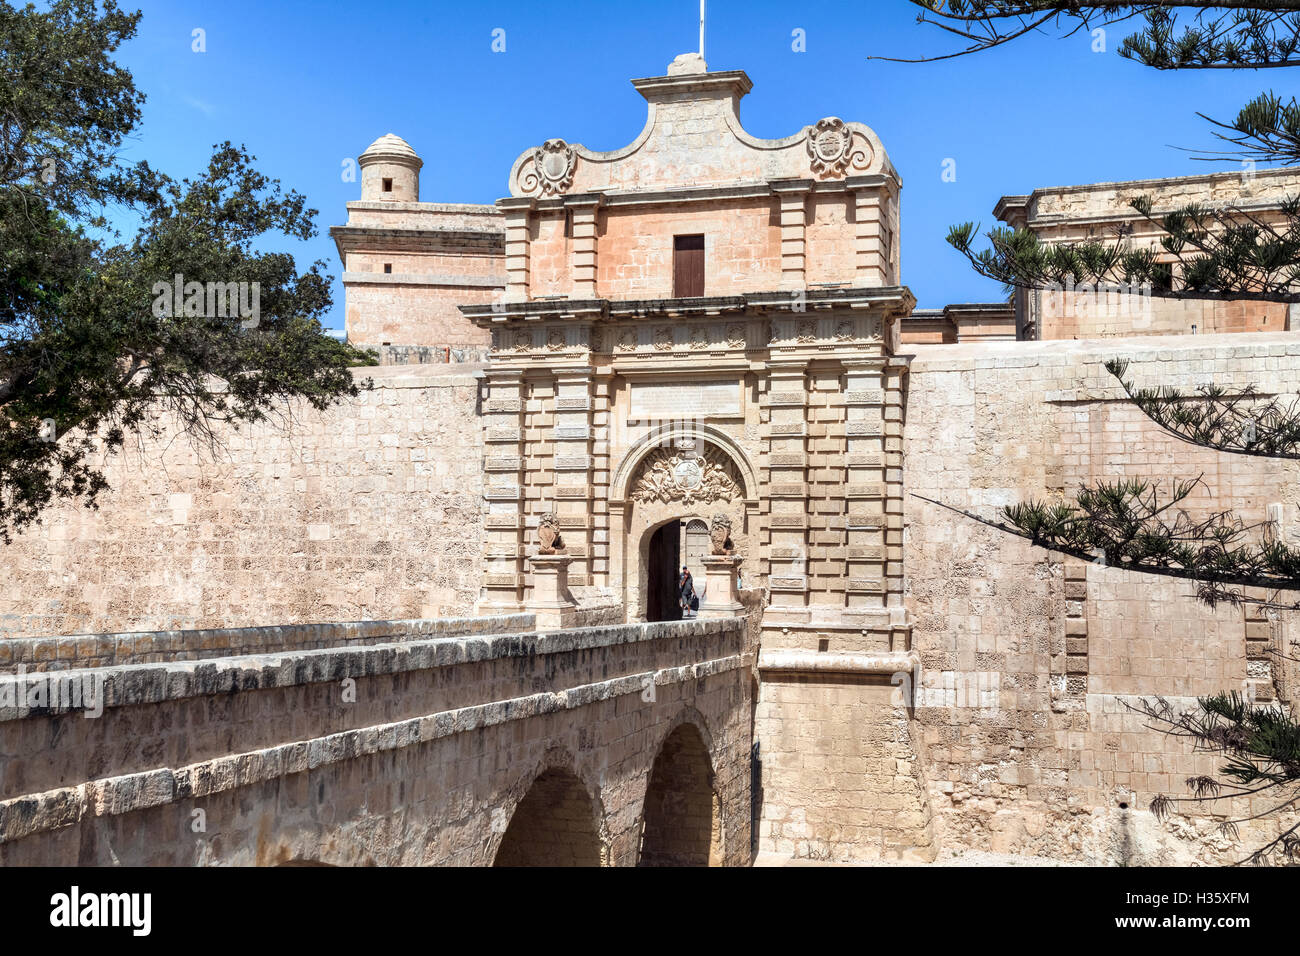 city gate of Mdina, Malta - Stock Image